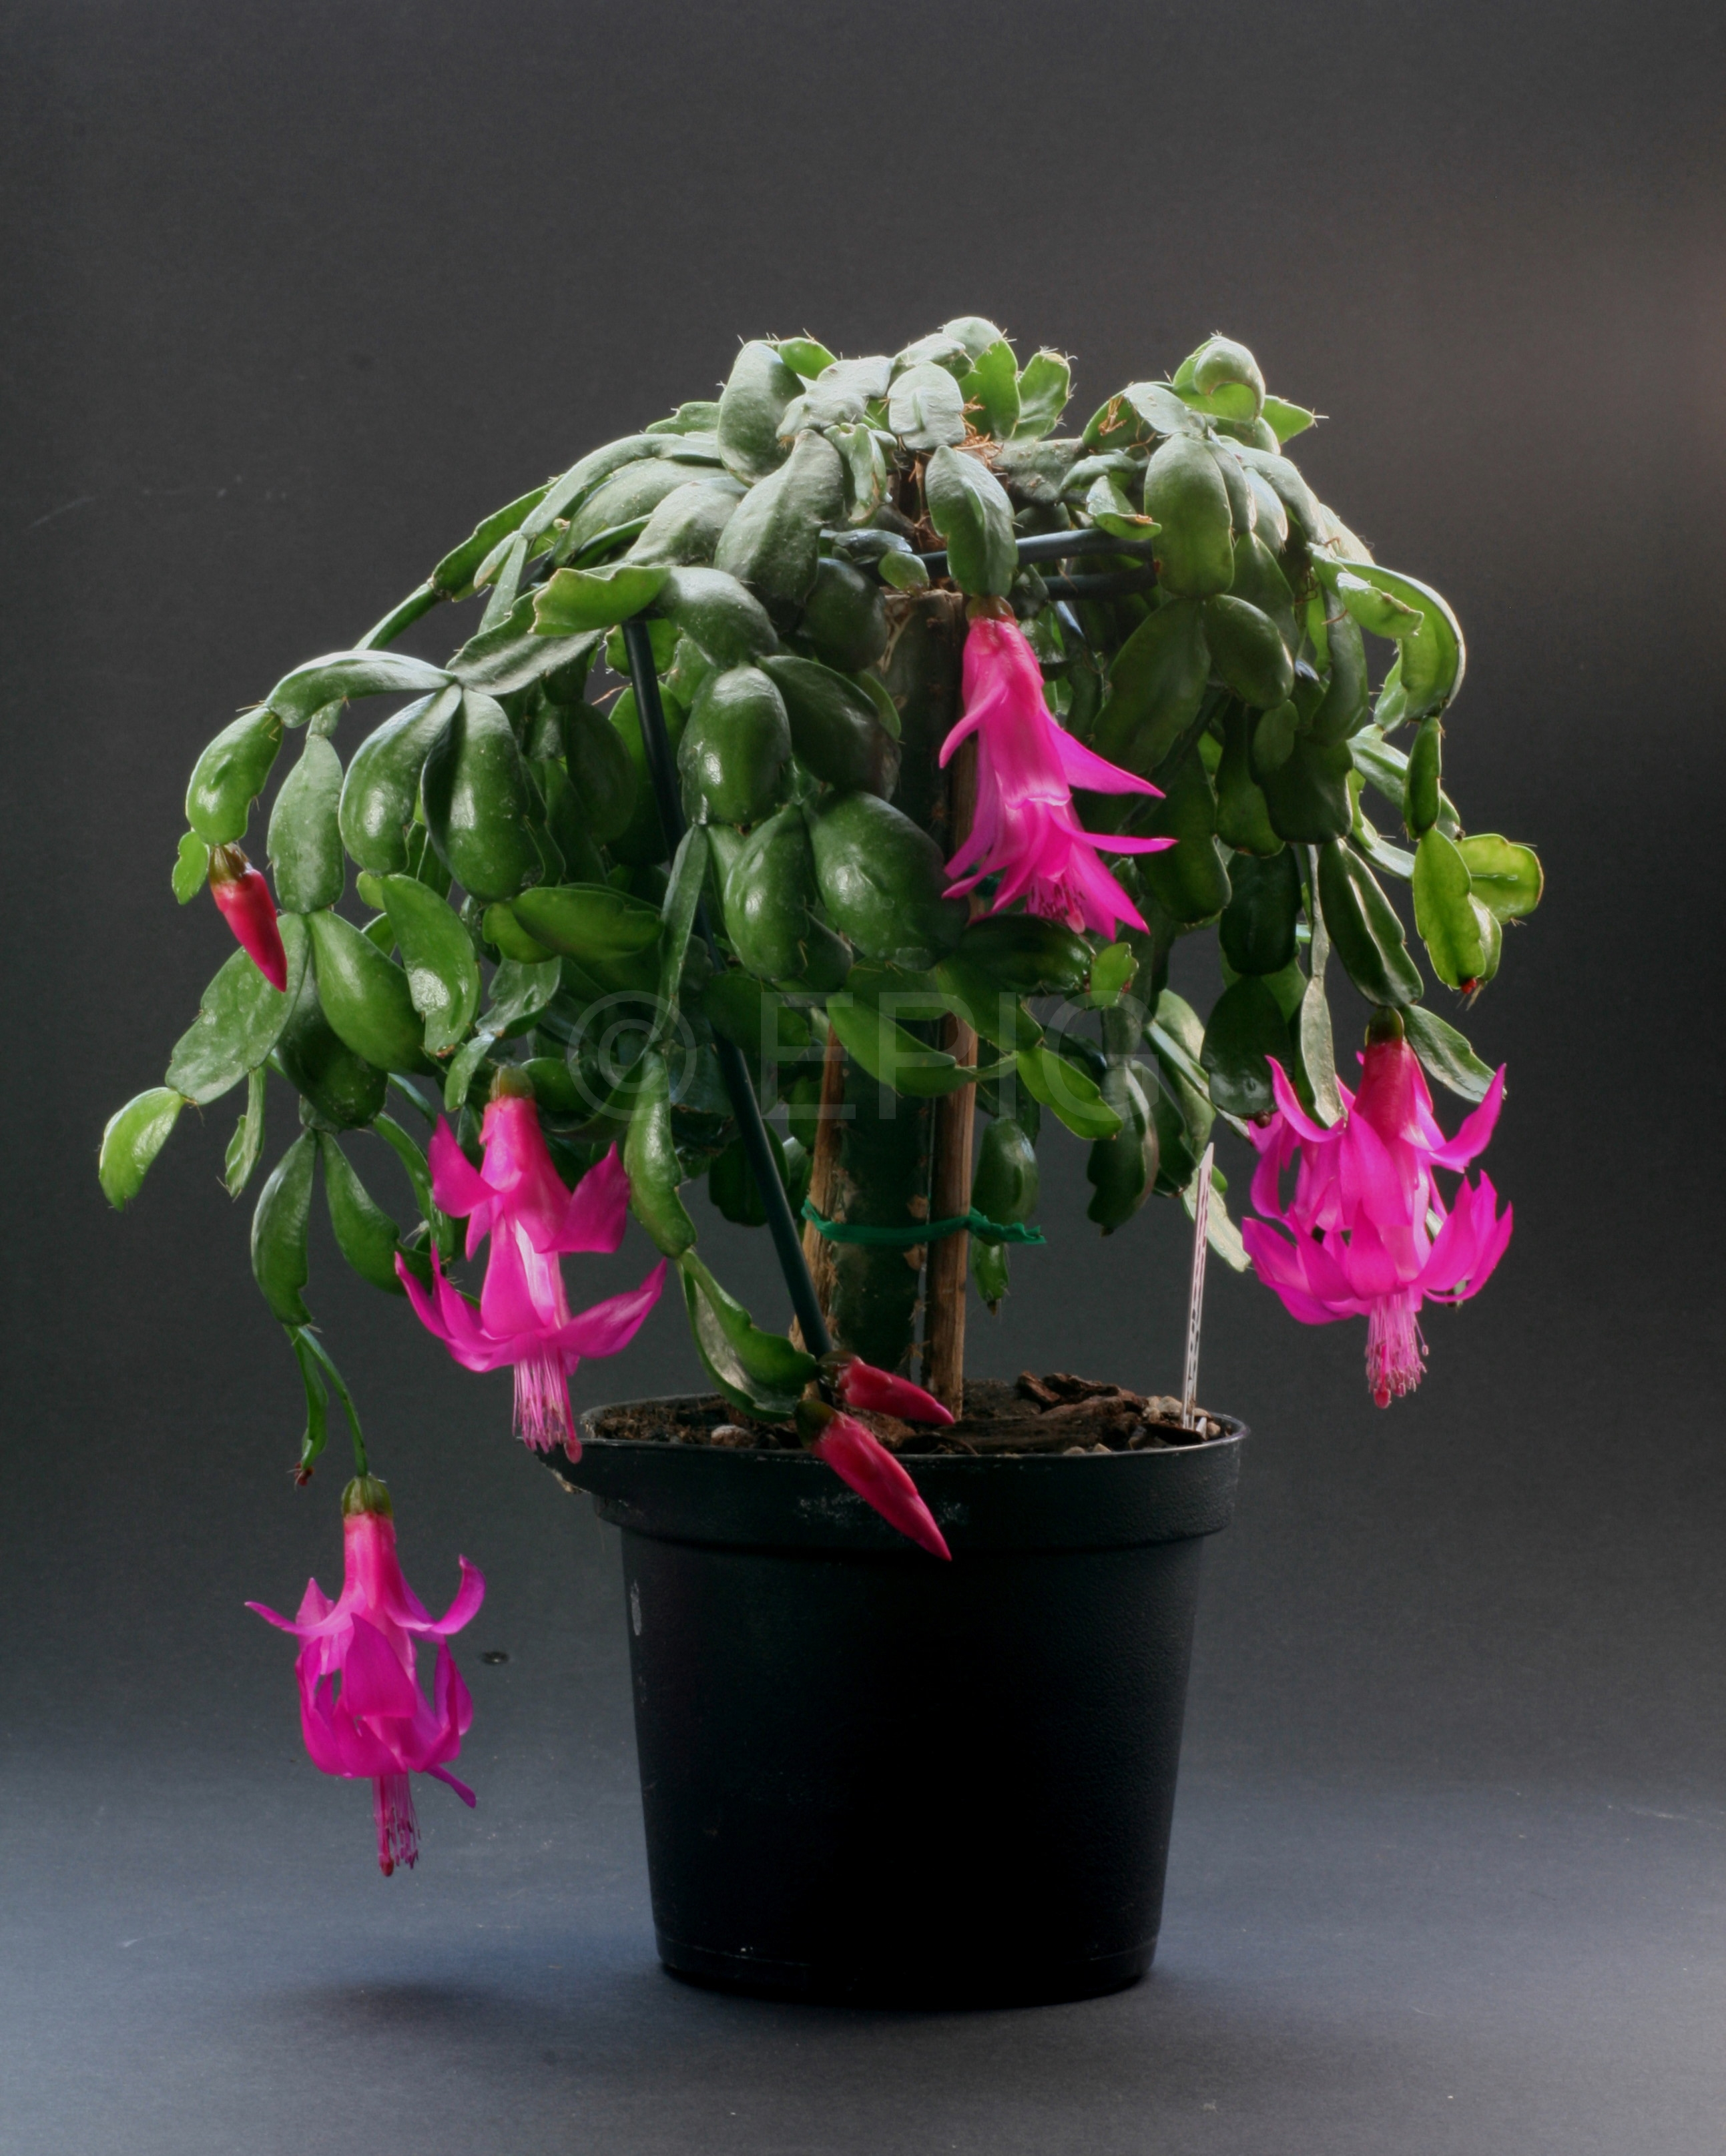 Schlumbergera russelliana '1839 Introduction' (Foto Jochen Bockemühl)